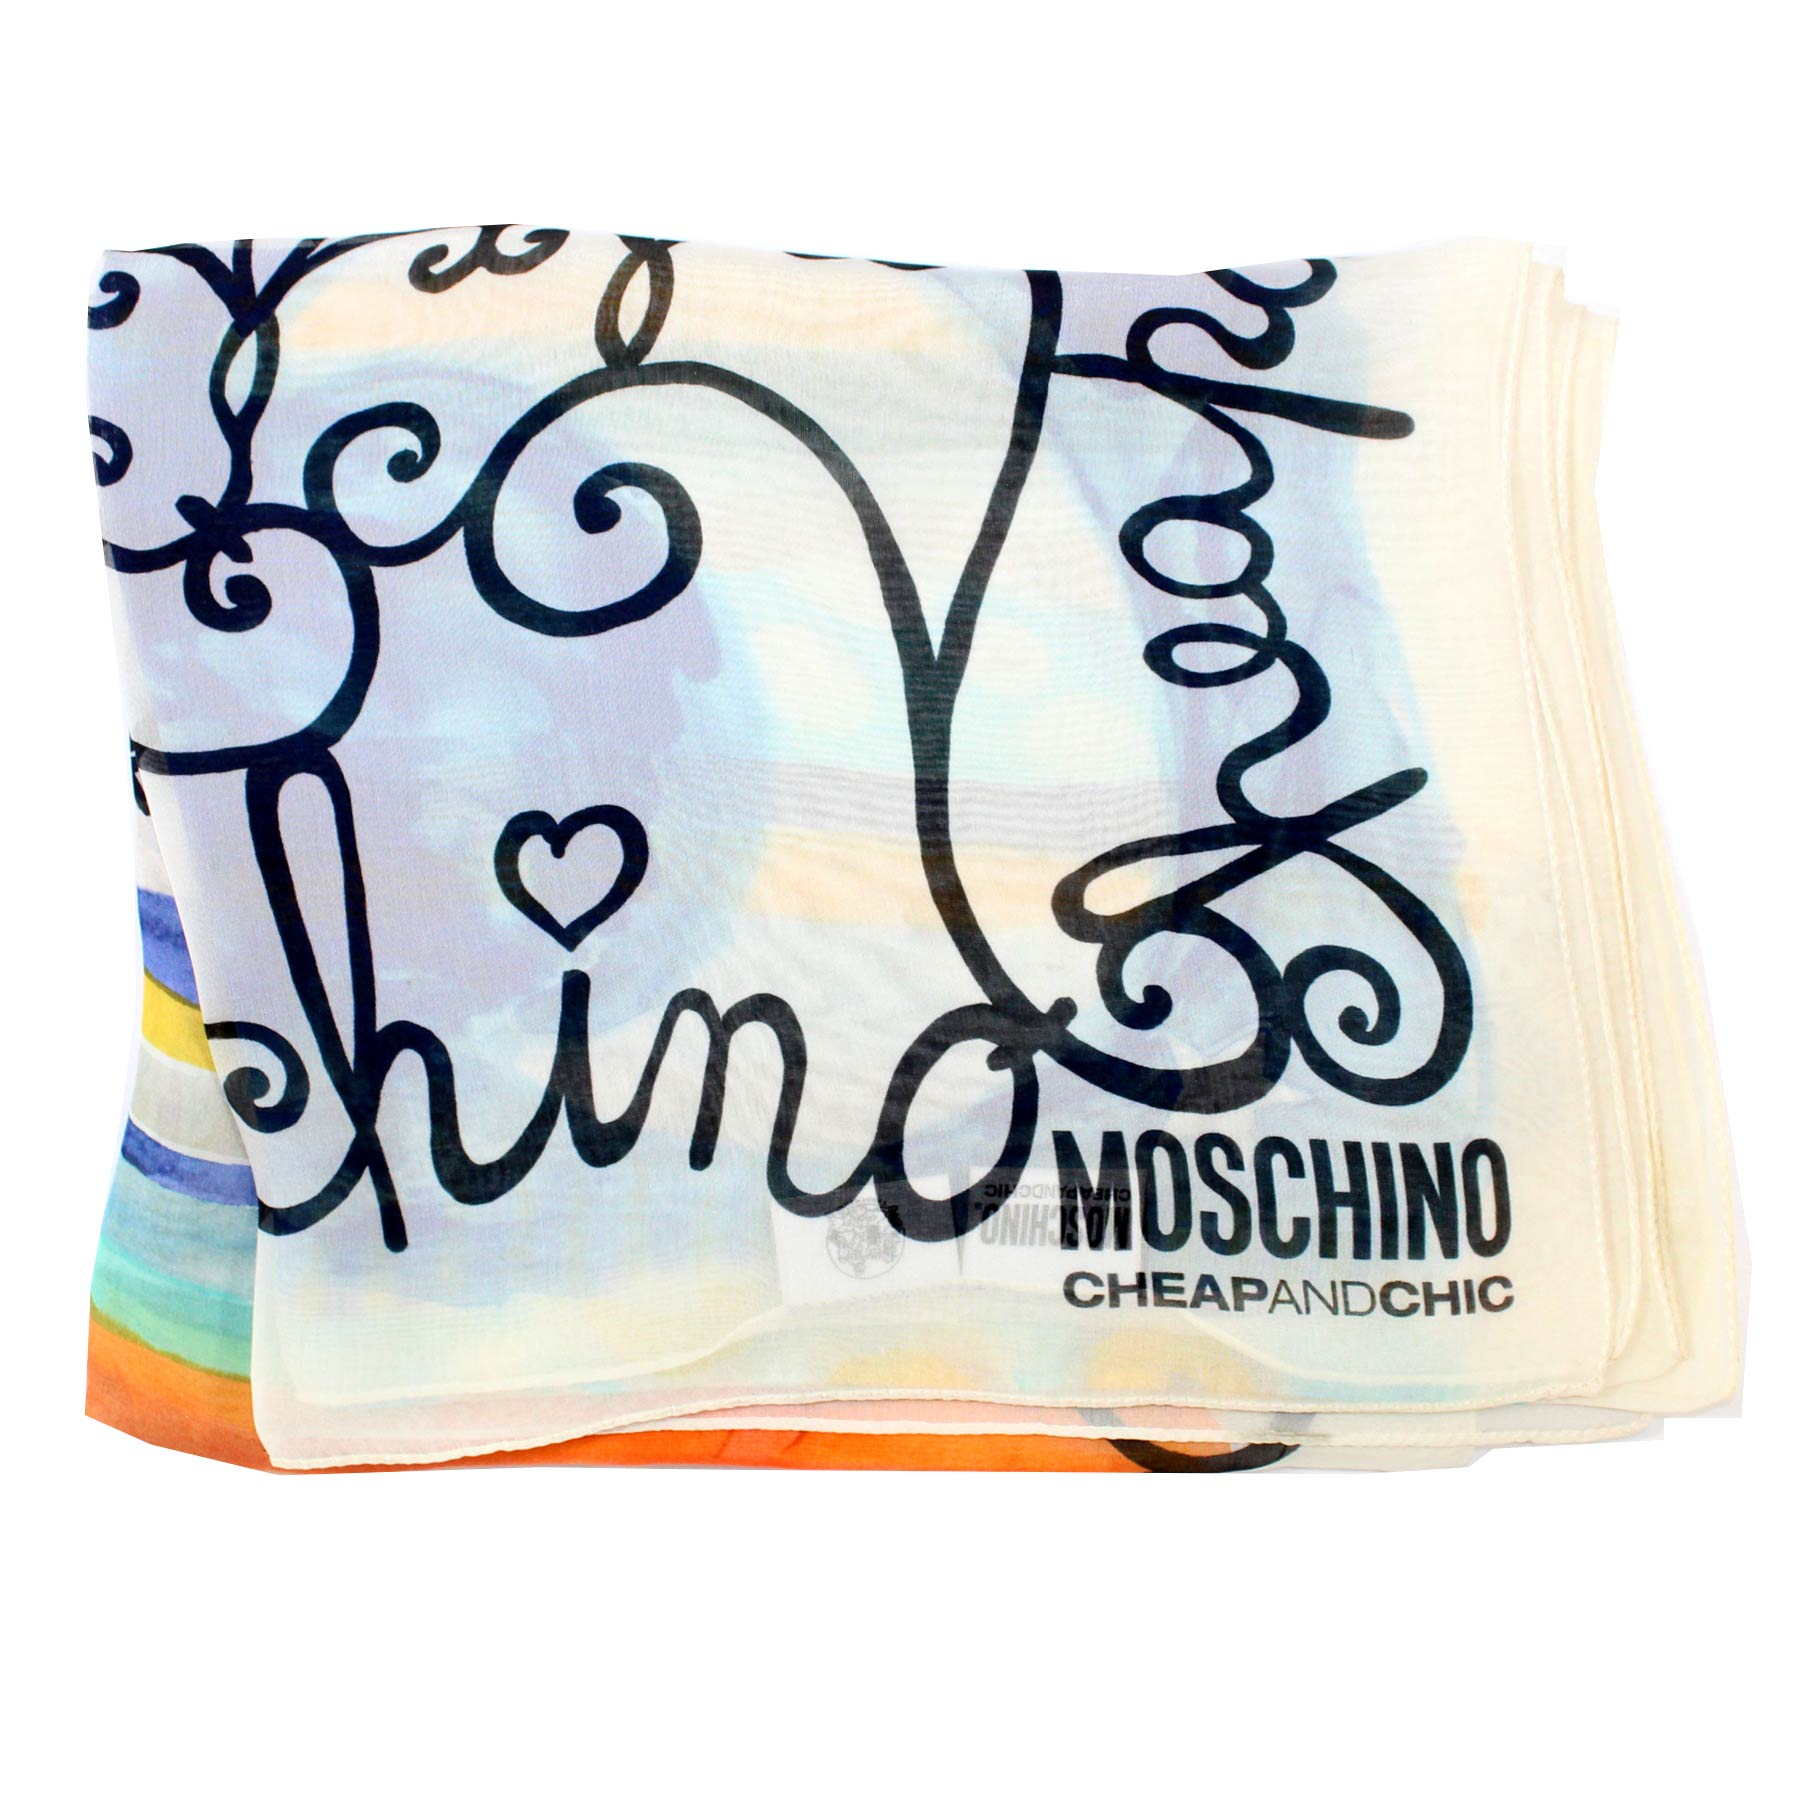 Moschino Silk Scarf Cheap & Chic